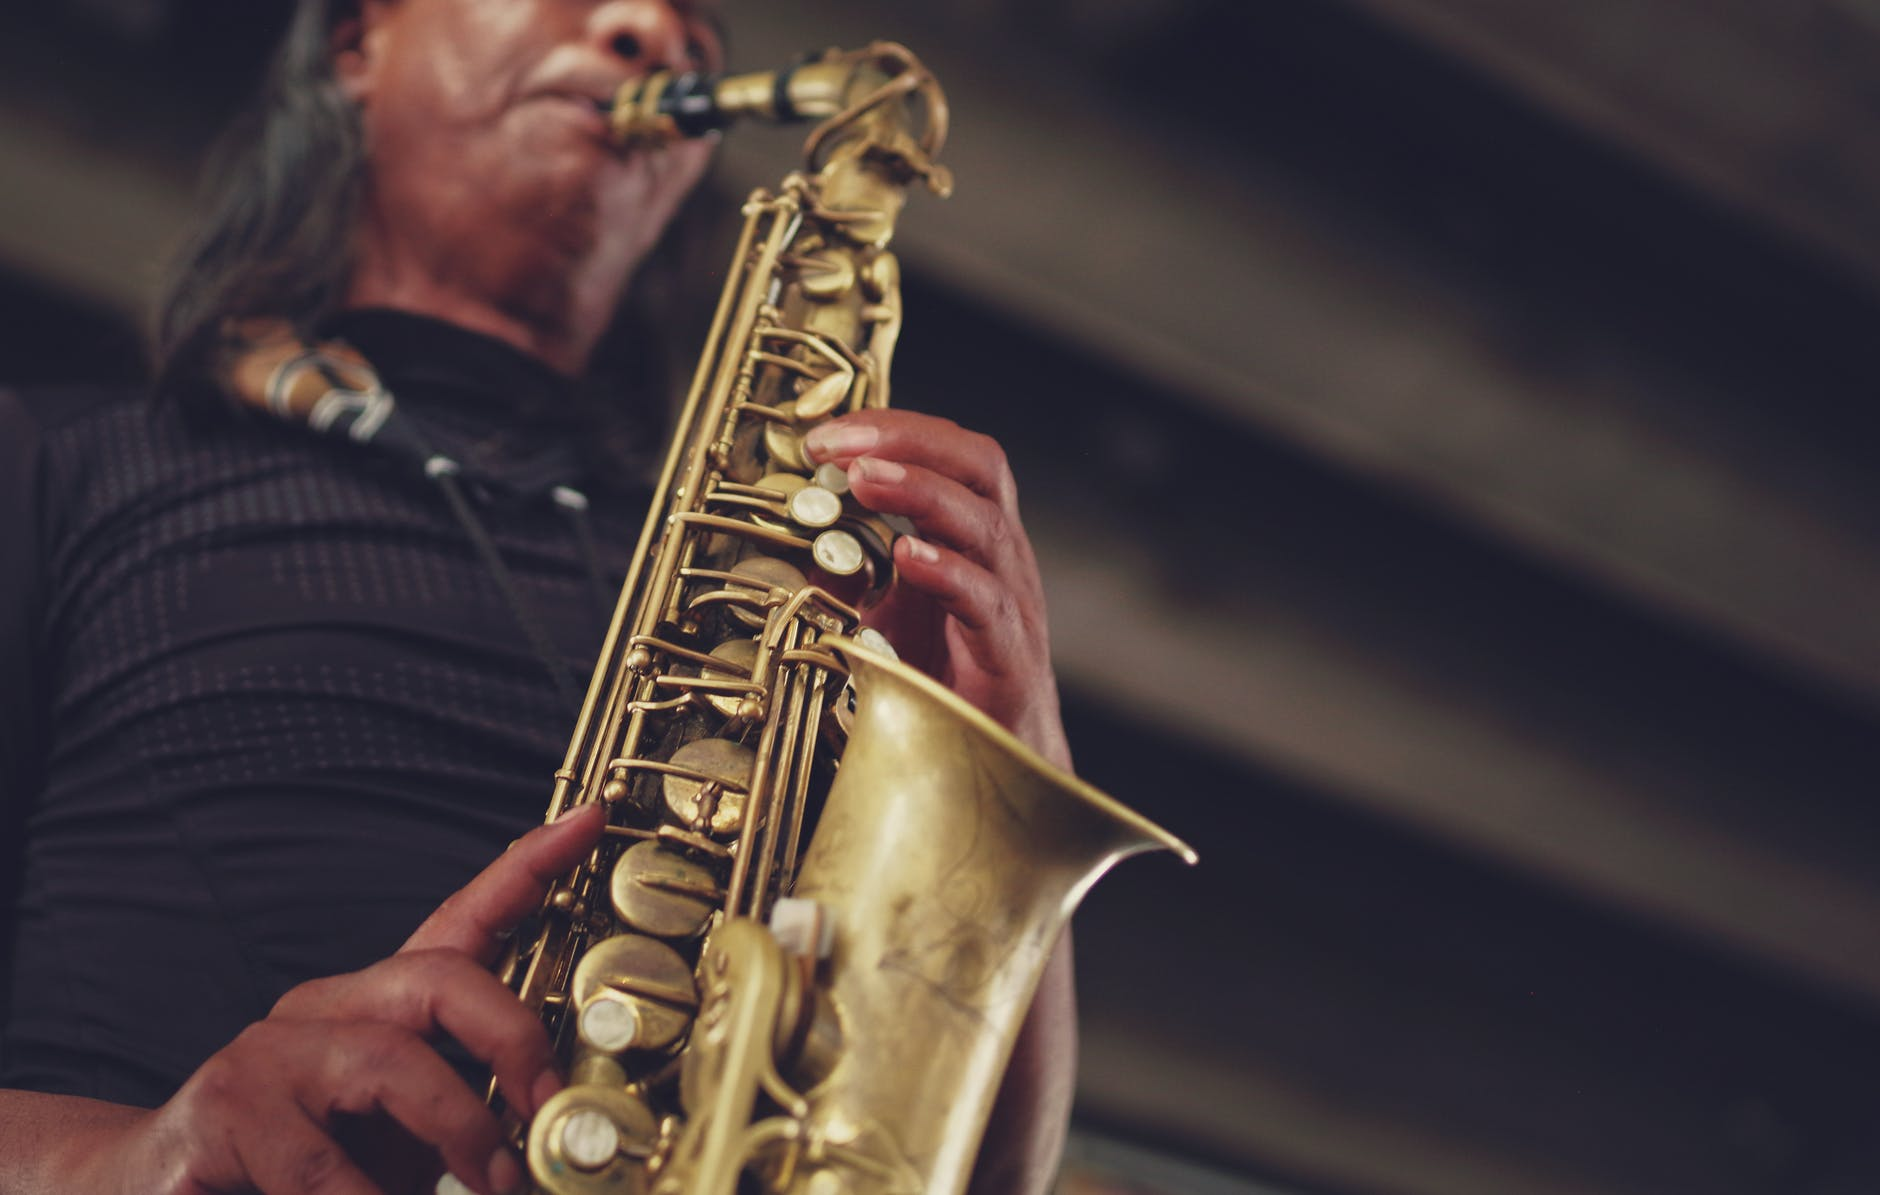 Enjoy Live Jazz From the Comfort – and Safety – of Your Home